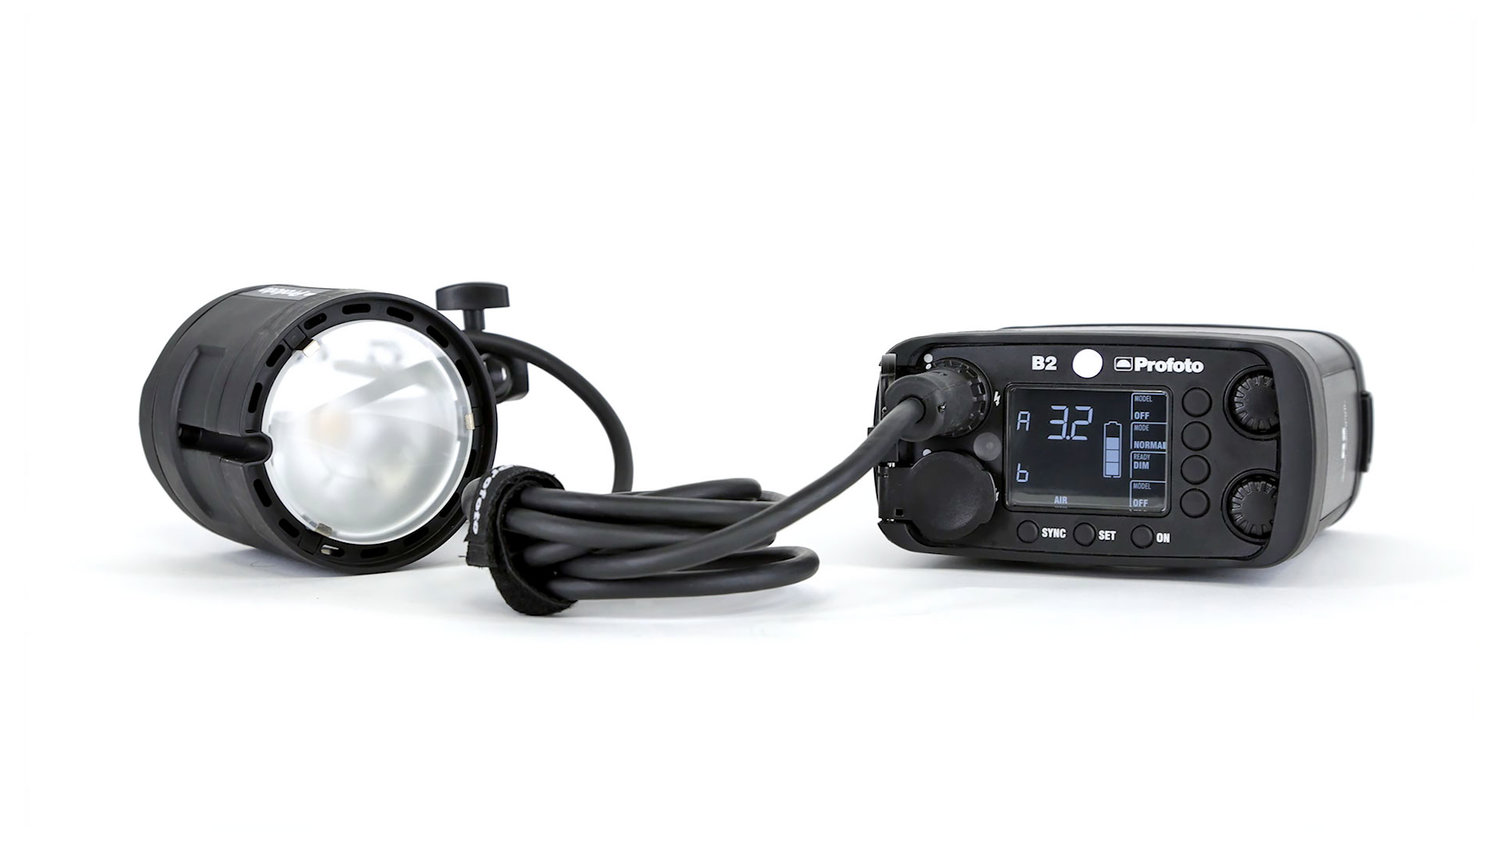 Profoto B2 250 Air   Portable studio light Comes with: batteries, charger, TTL-C, TTL-N, TTL-S remote